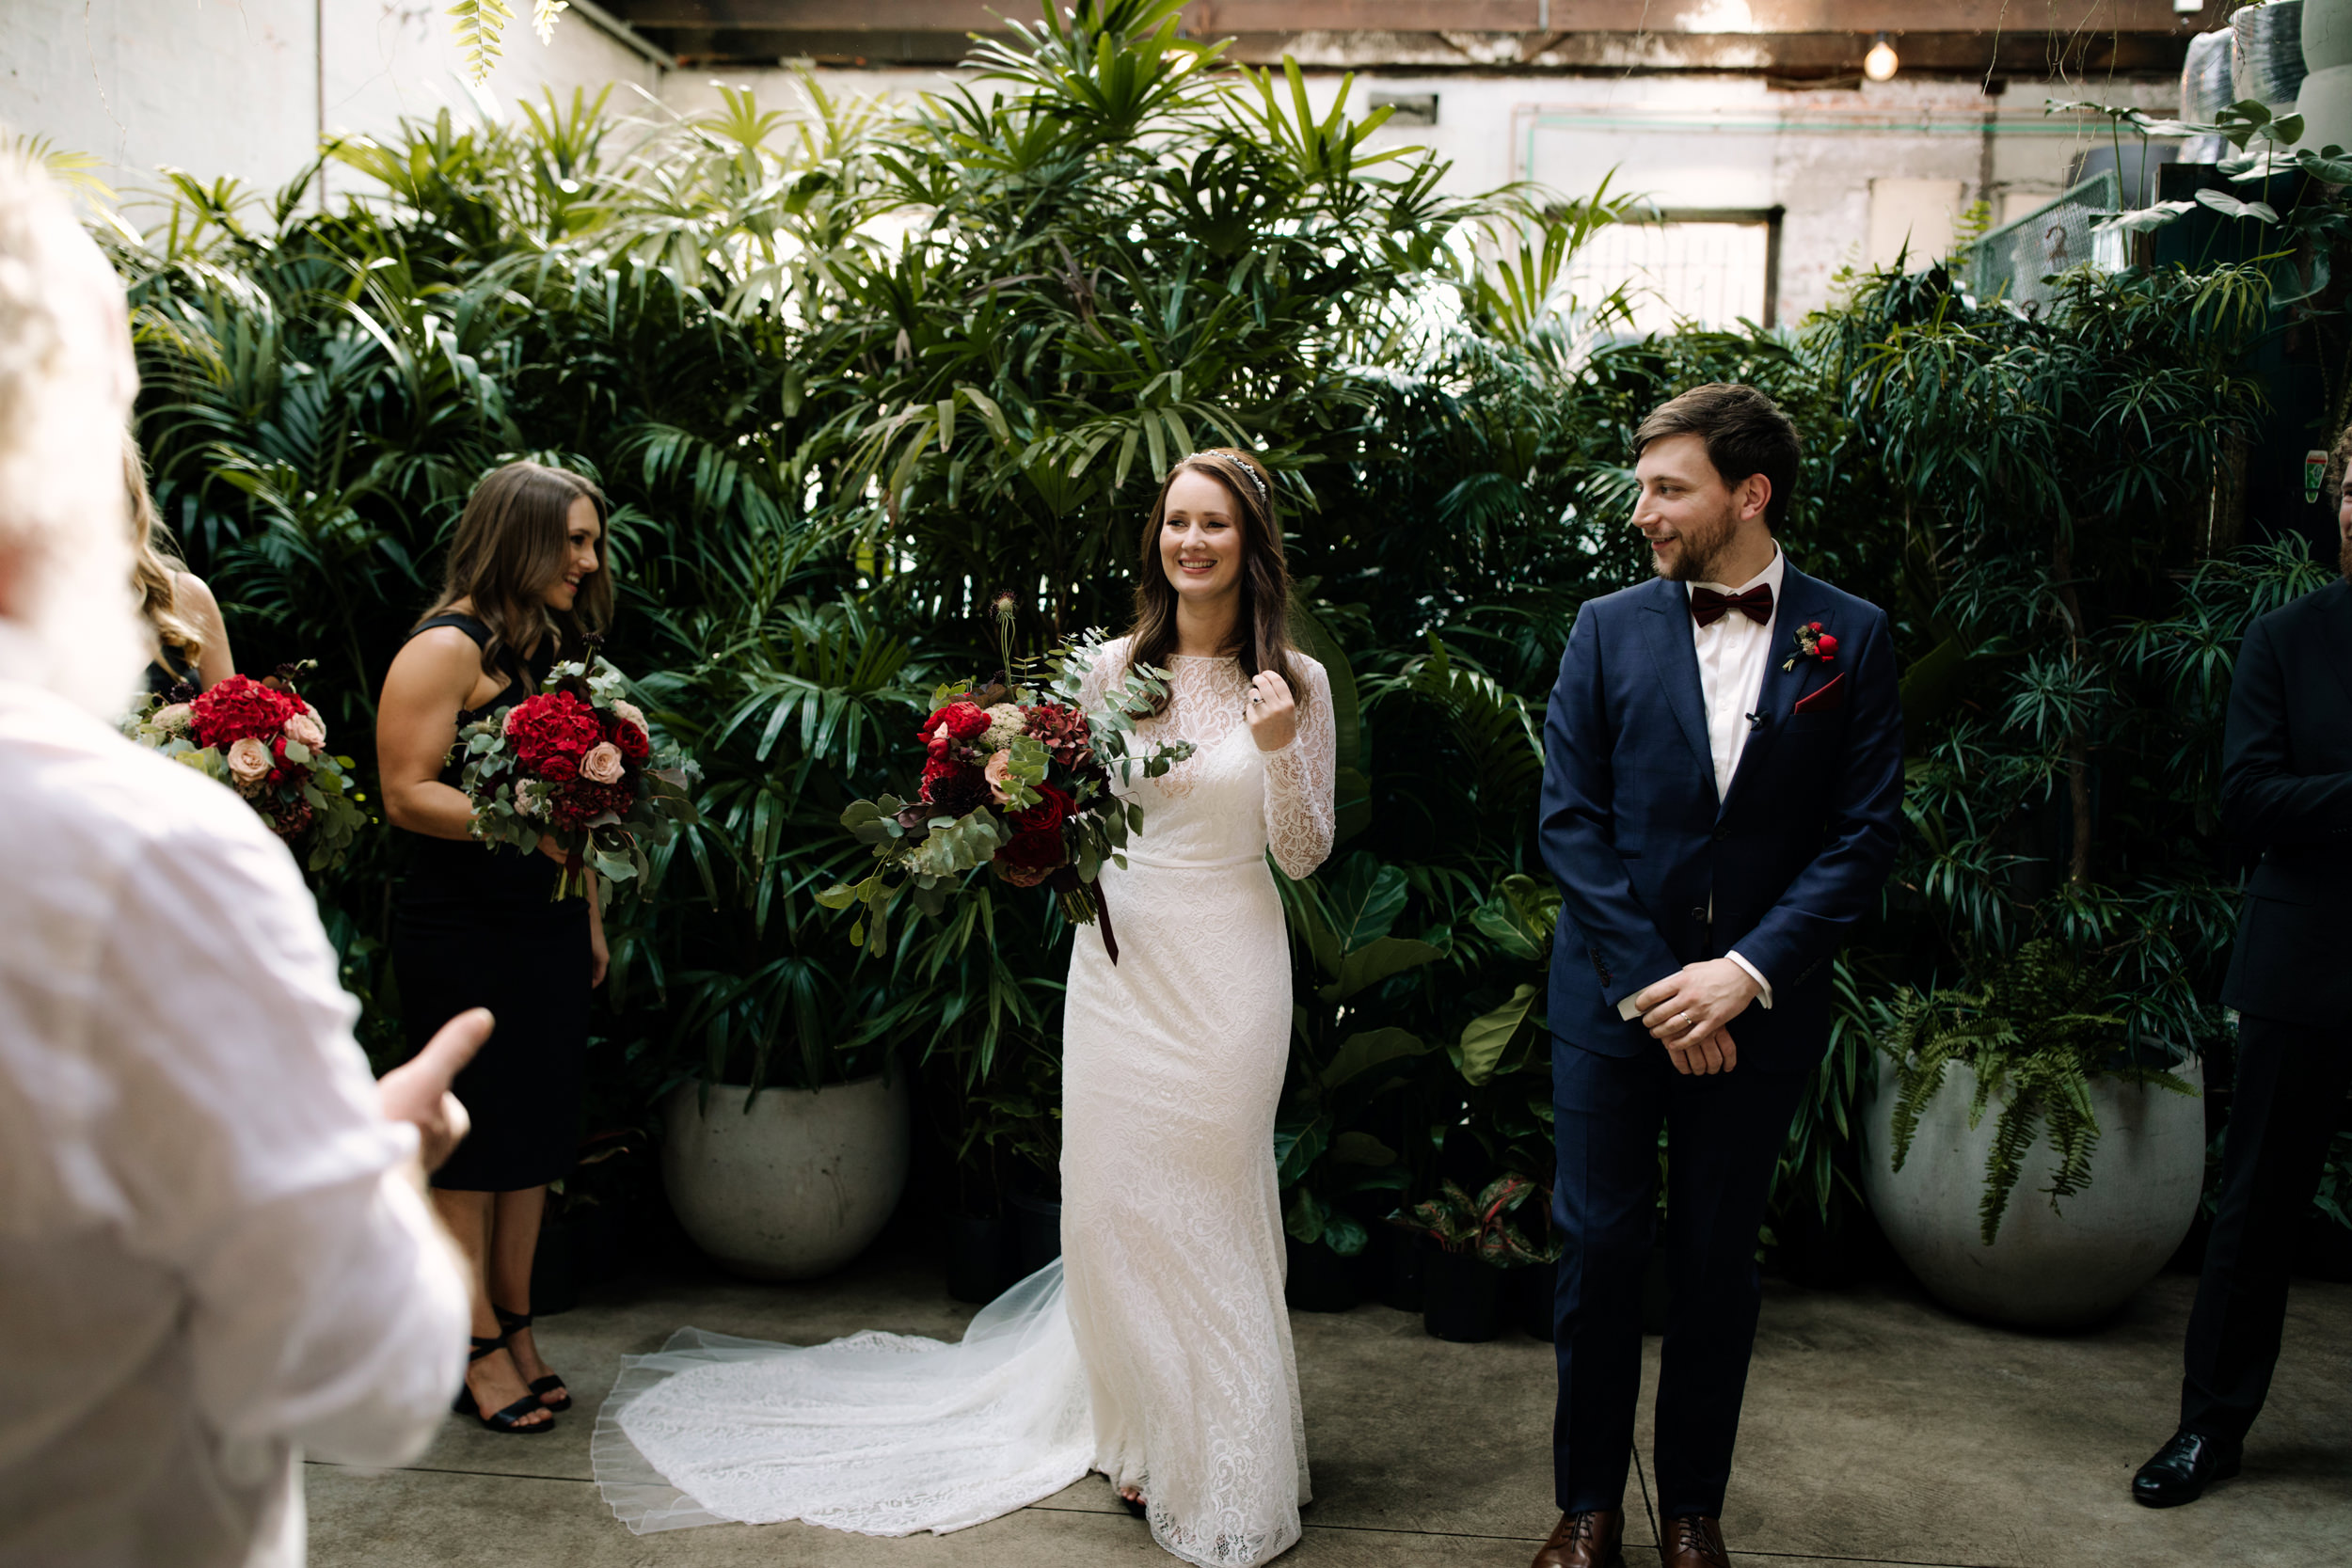 I_Got_You_Babe_Weddings_Emily_Matt_Rupert_Glasshaus_Melbourne0082.JPG